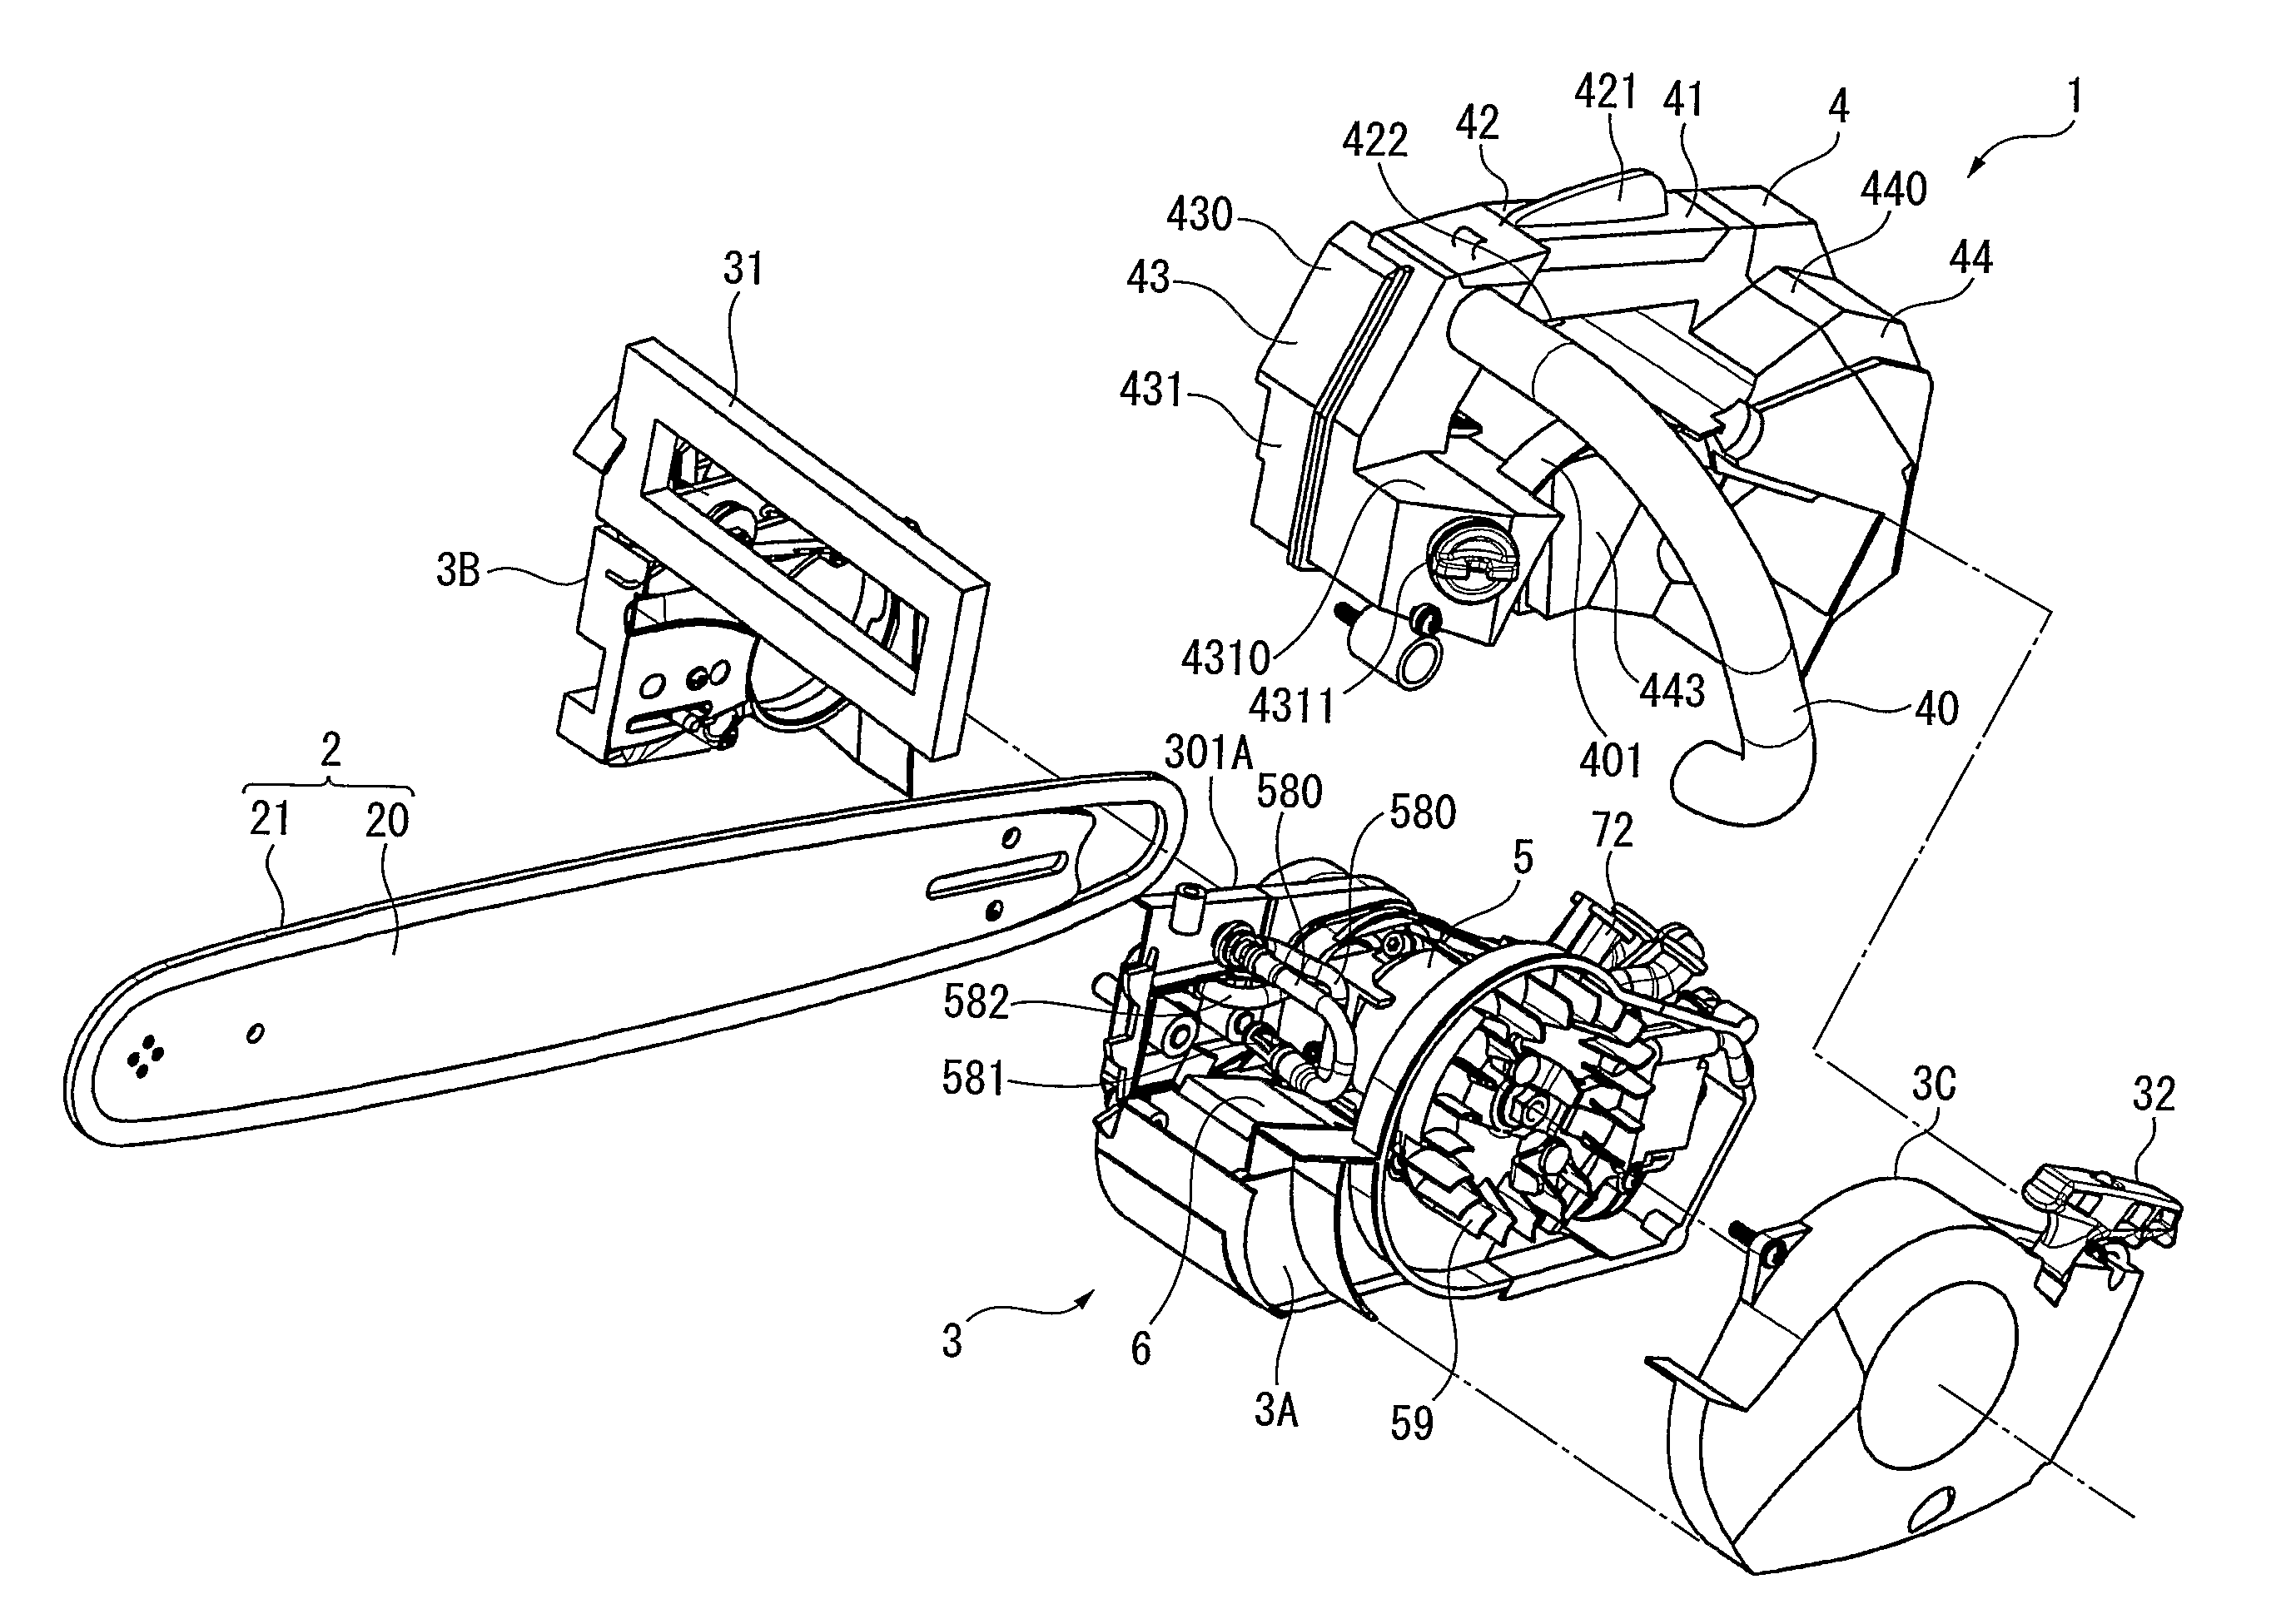 2752x1951 Chainsaw Chain Technical Drawing